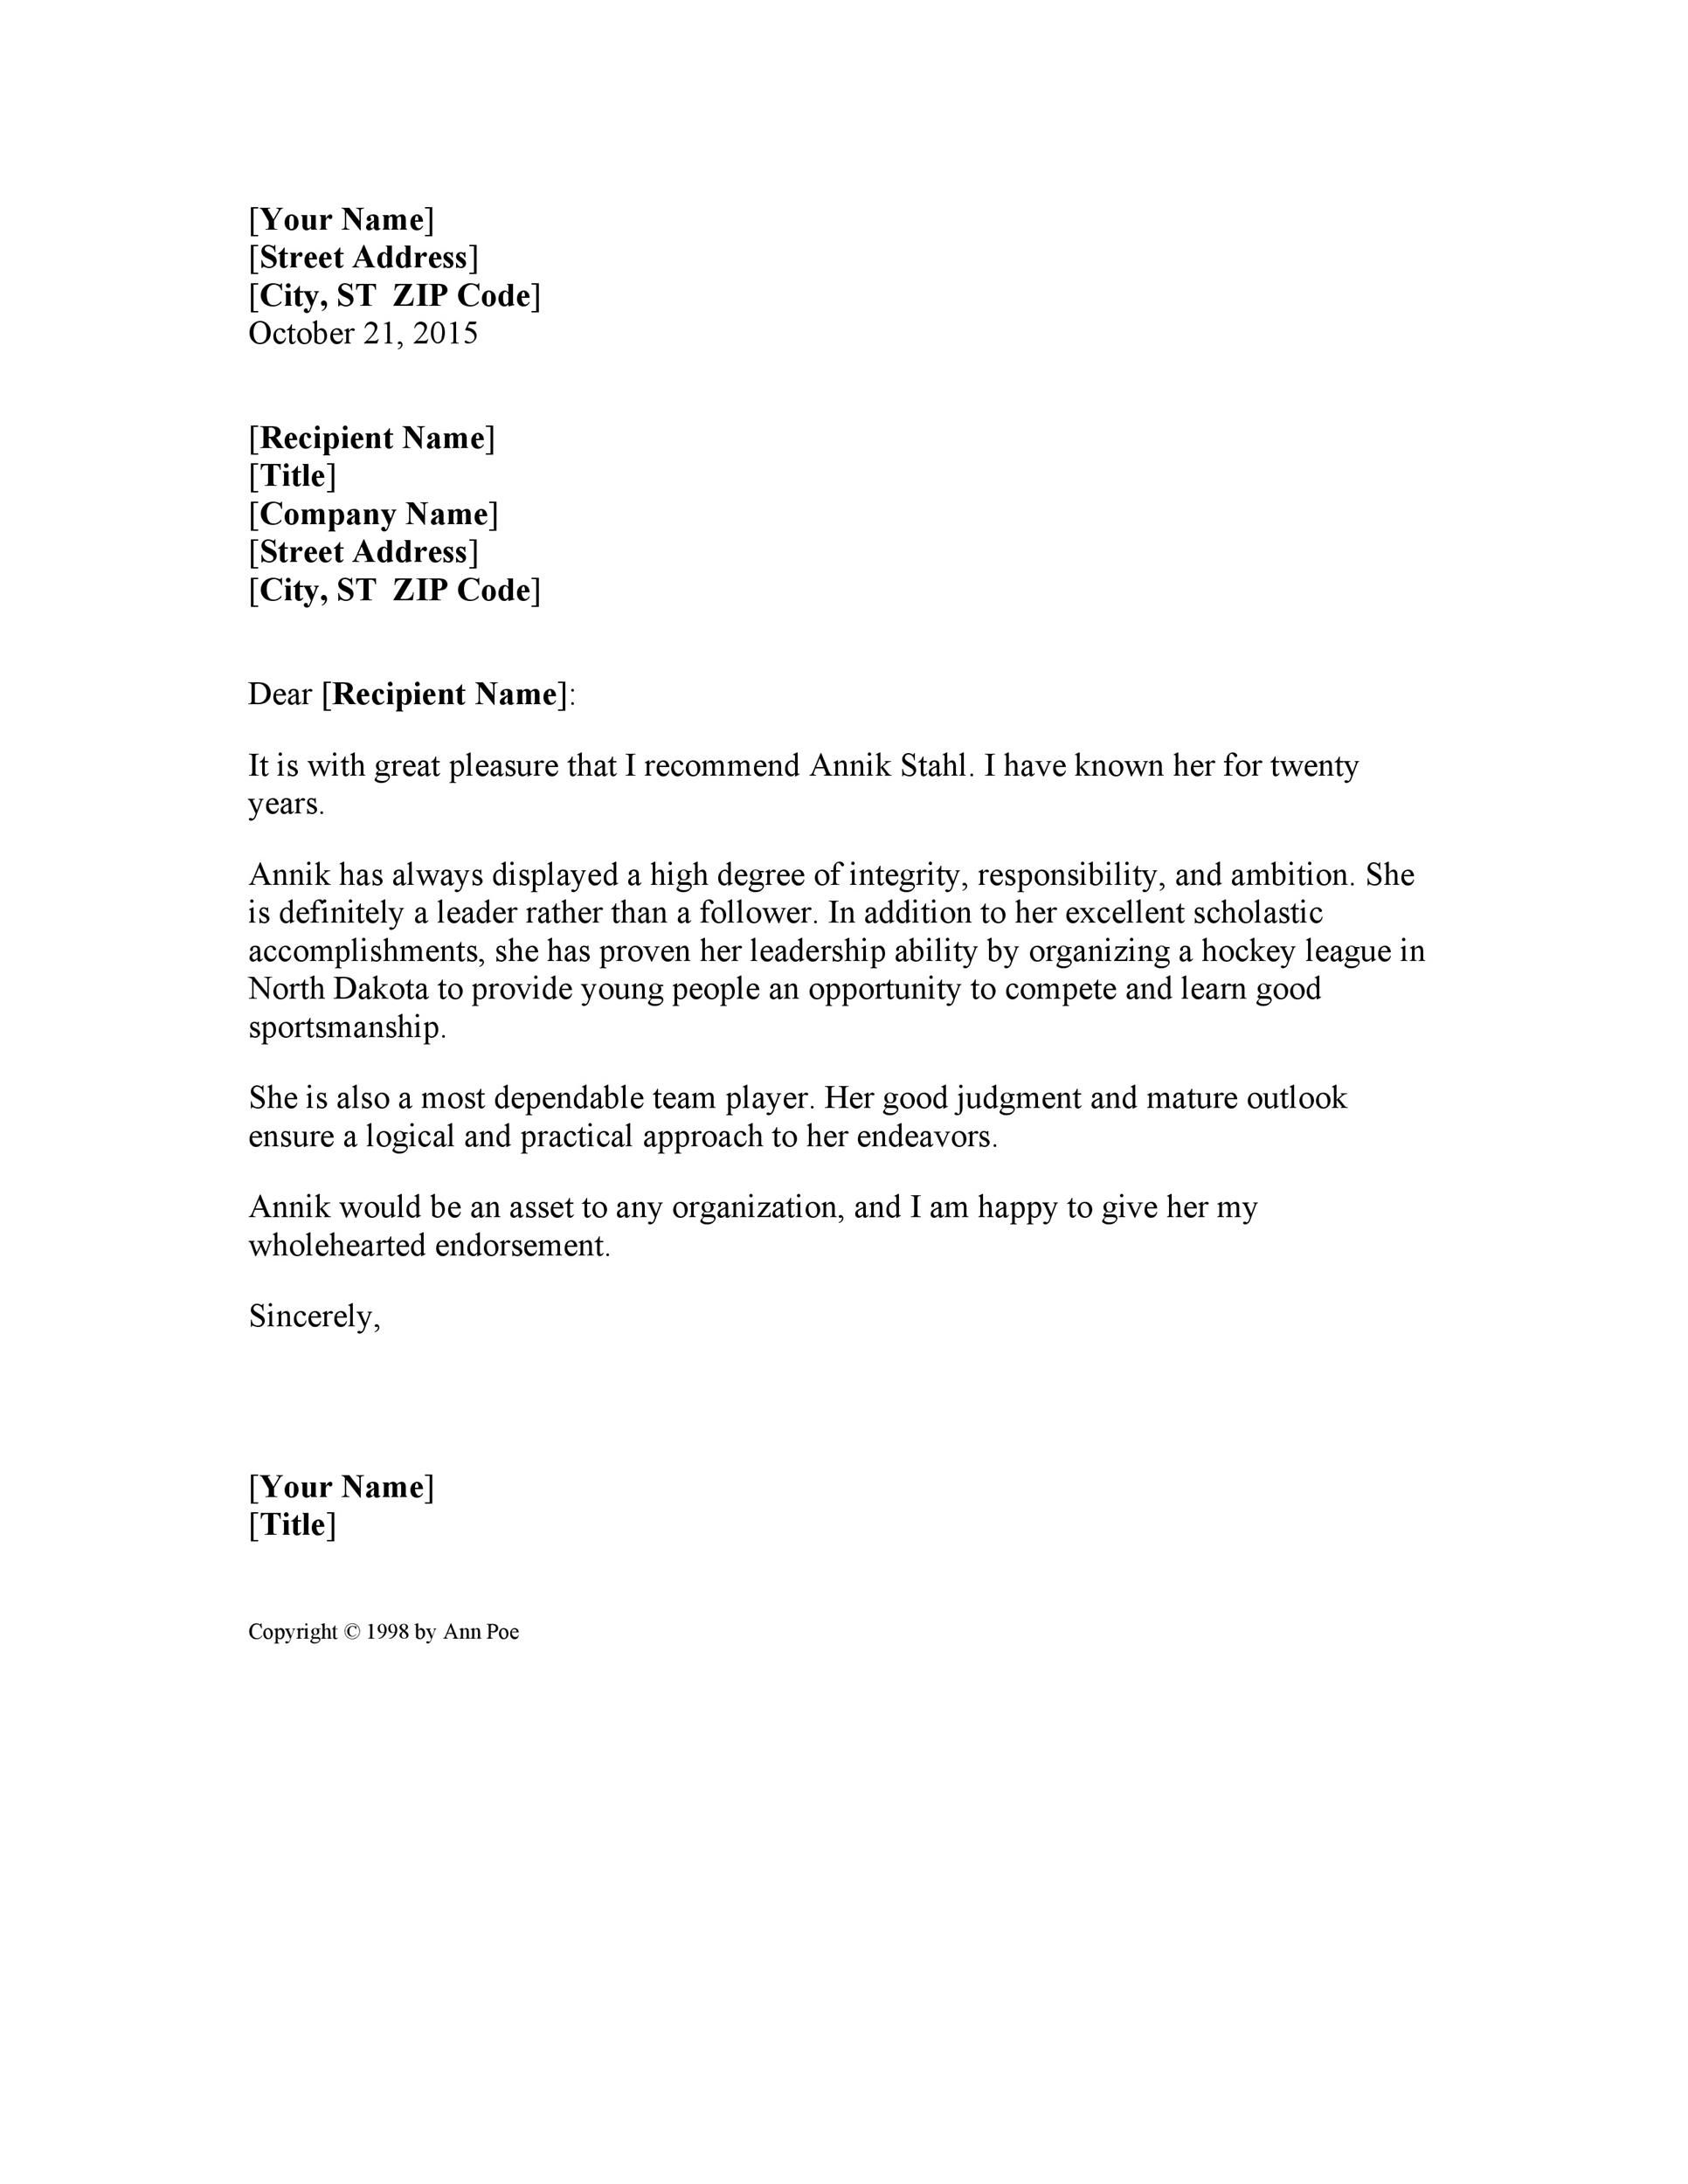 007 Awful Personal Letter Of Recommendation Template Highest Quality  Sample Character Reference AssistantFull